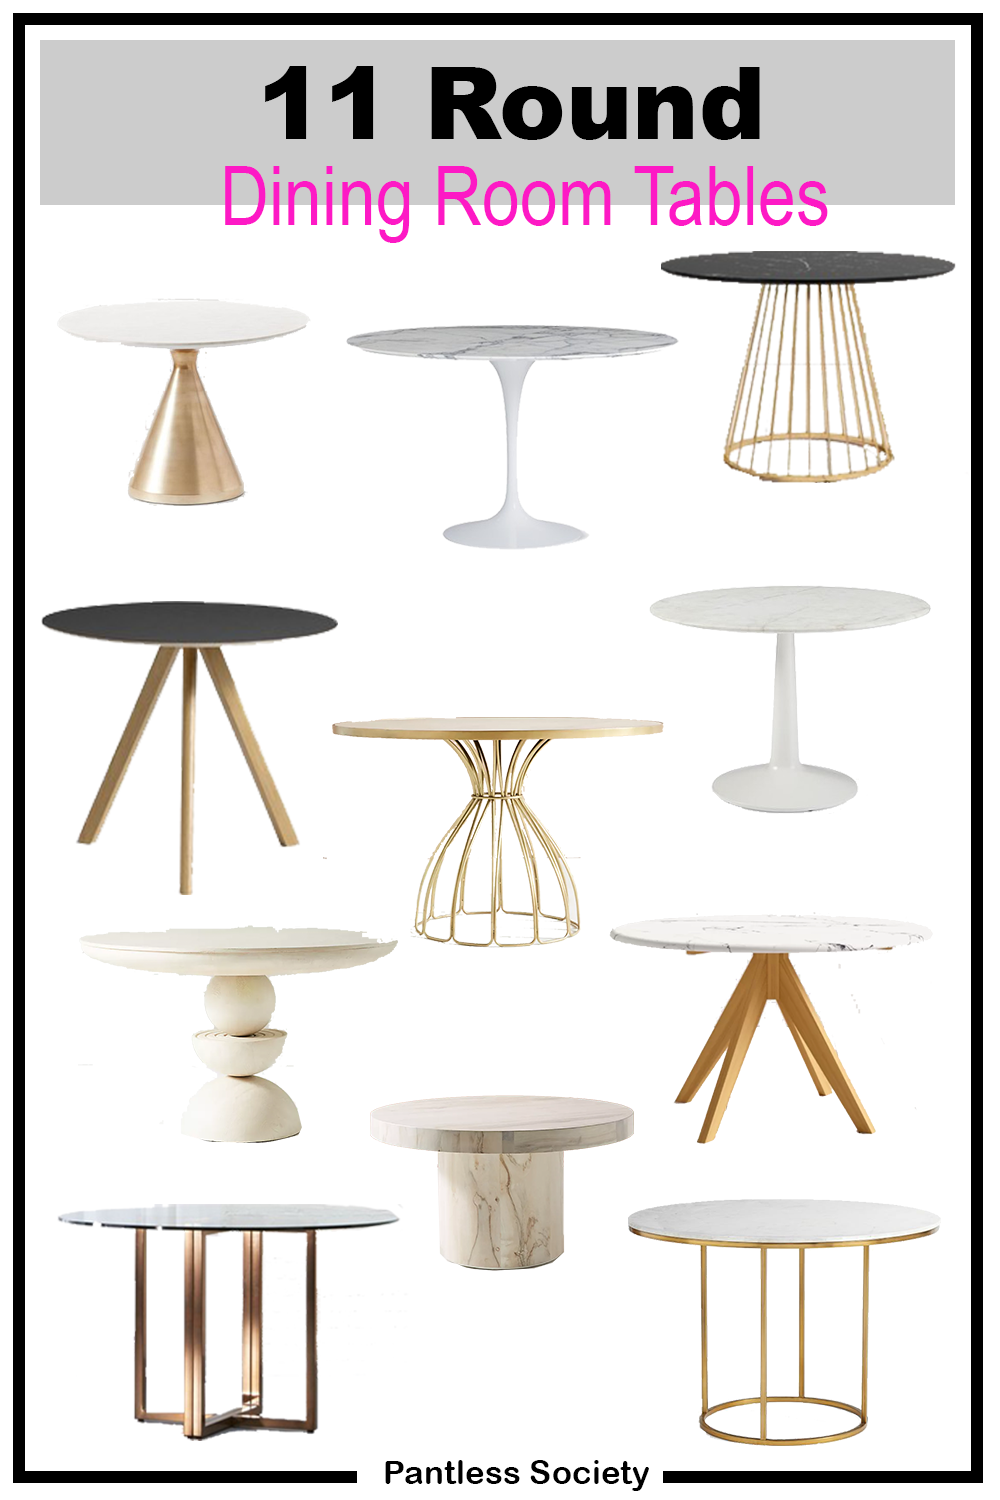 round-dining-room-tables.png